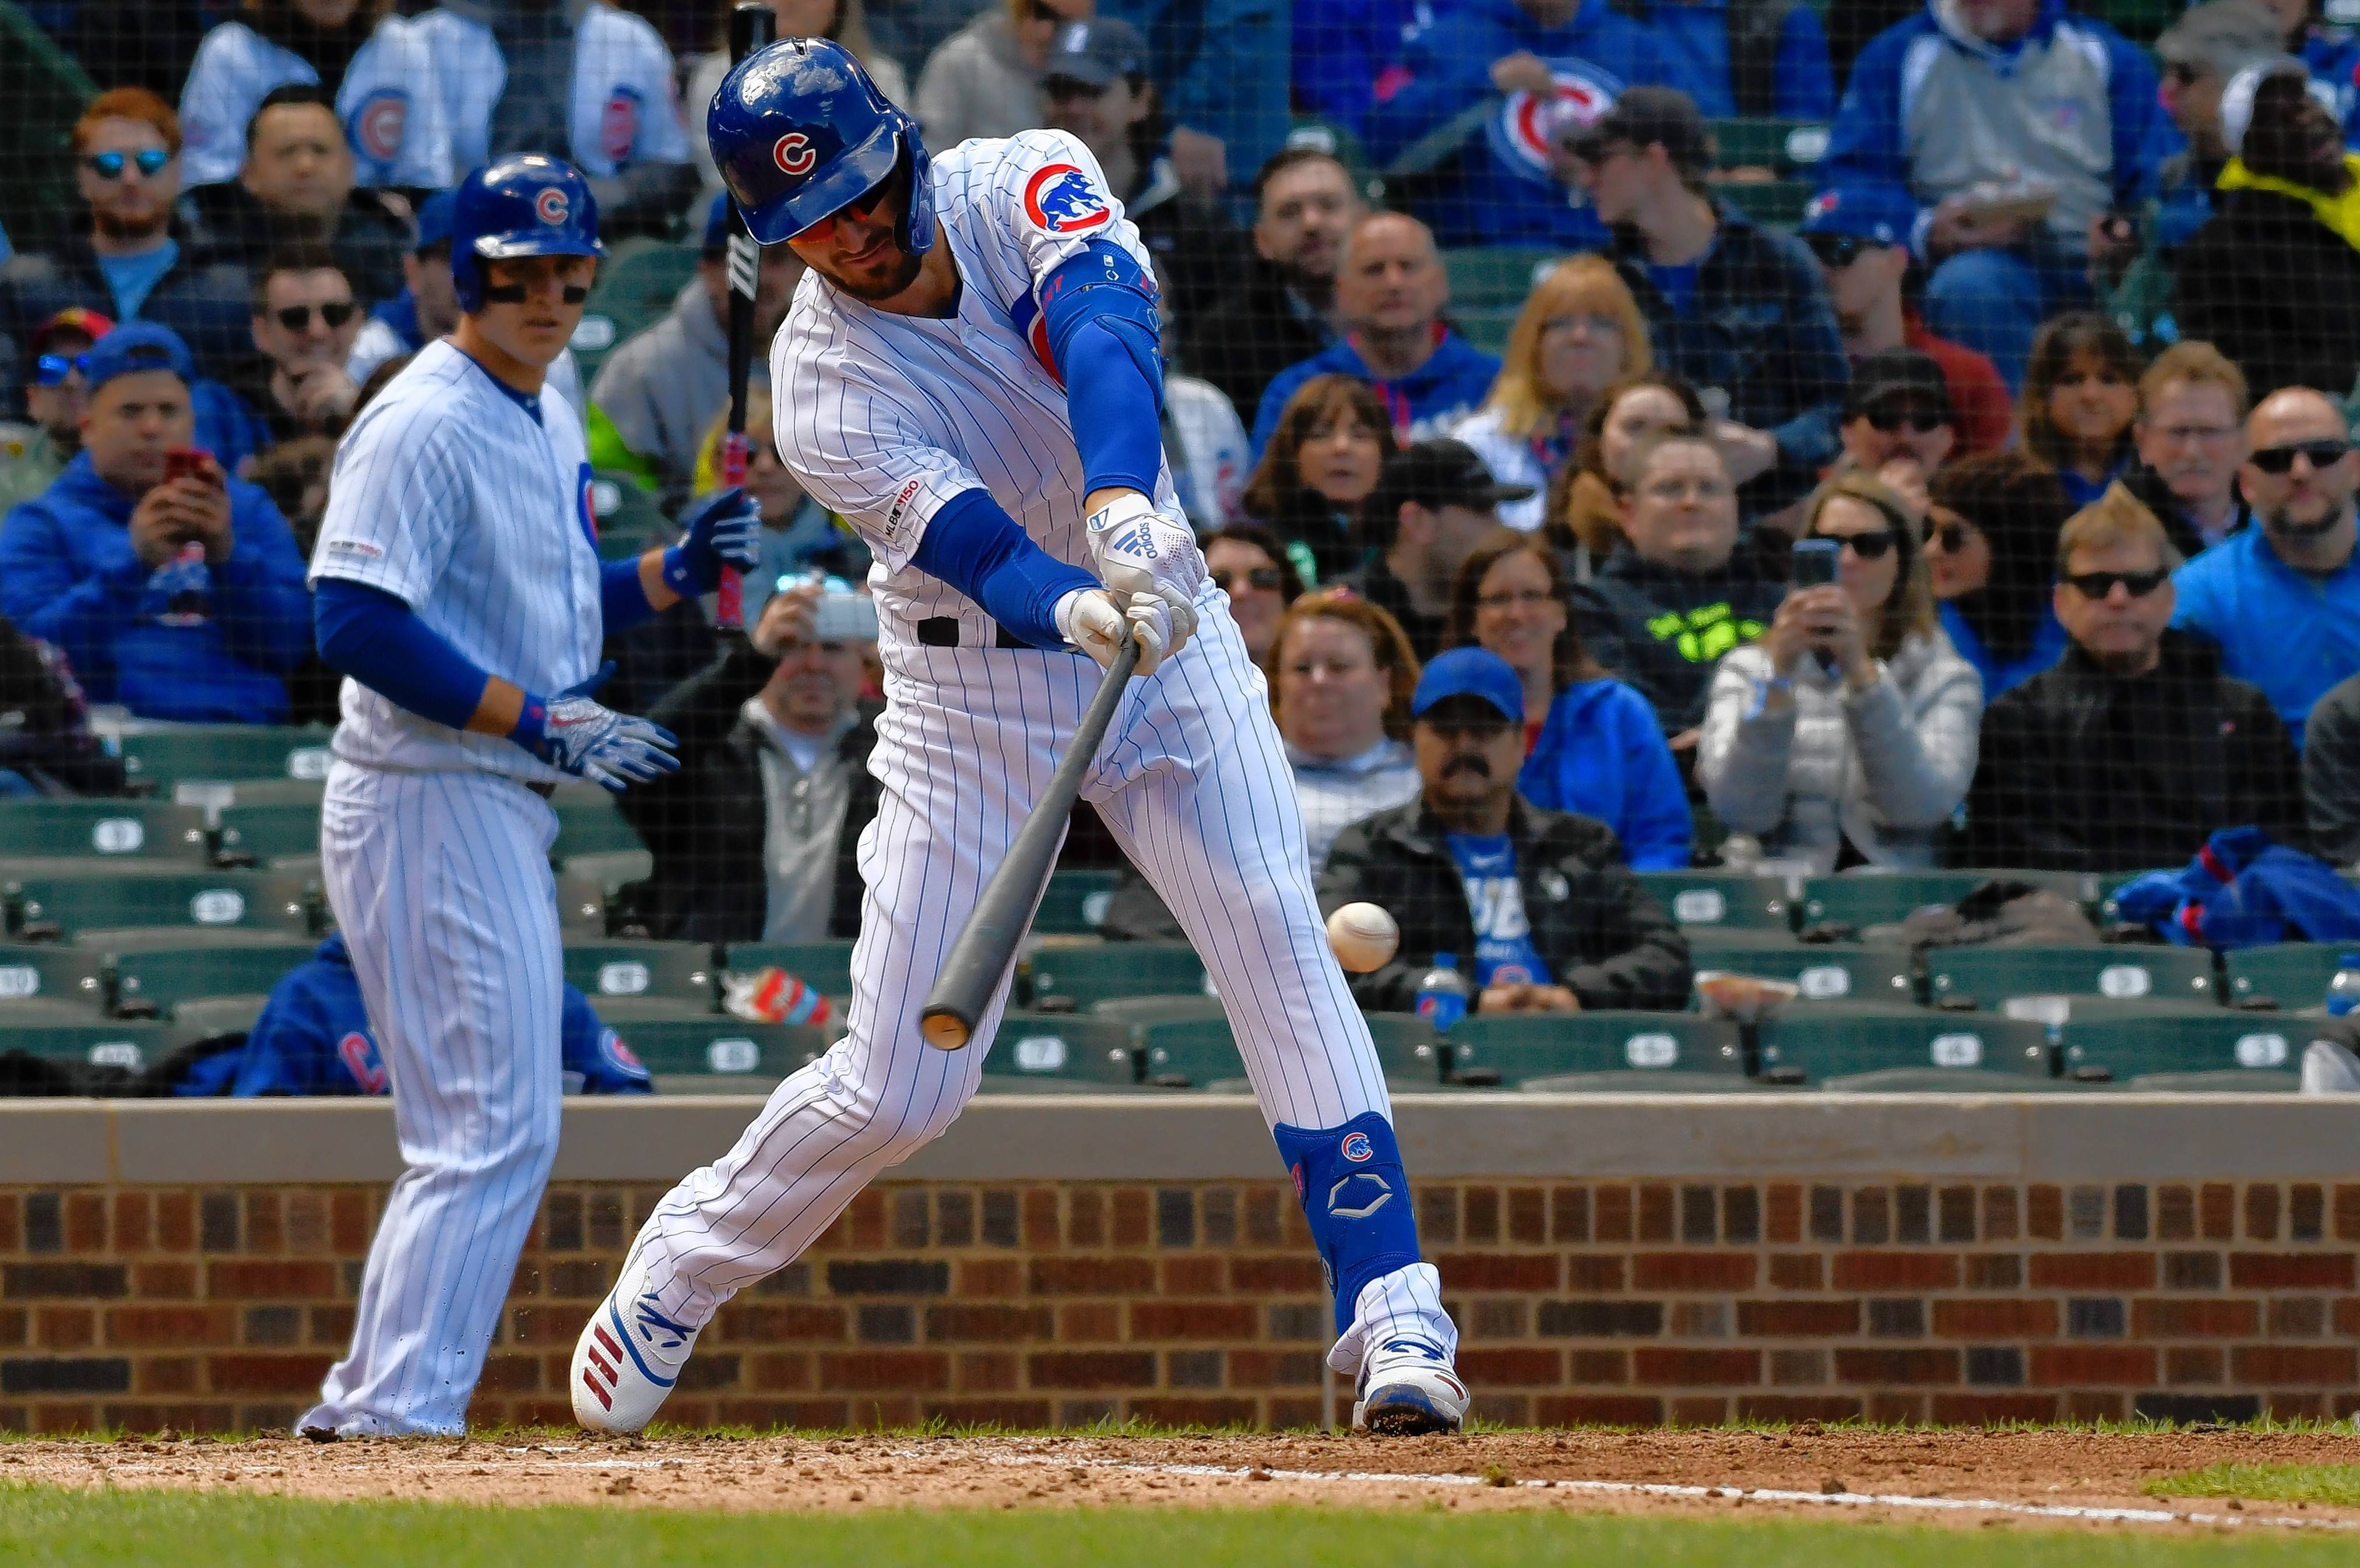 Slumping Kris Bryant was not in the Cubs' lineup Saturday, but manager Joe Maddon said Bryant had a day off coming.